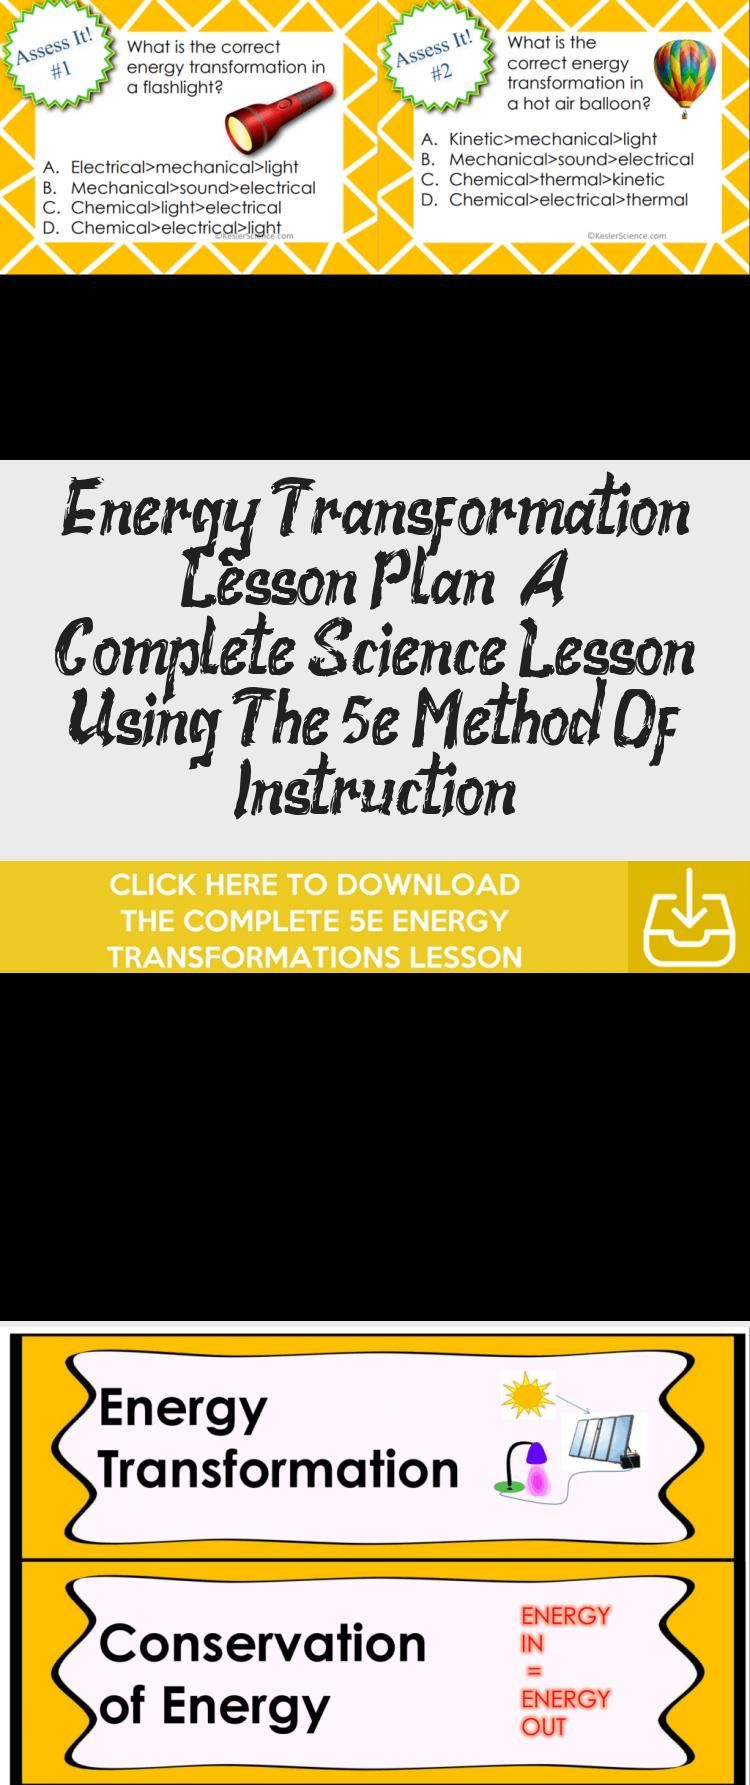 Energy Transformation Lesson Plan A Complete Science Lesson Using The 5e Method Of Instruction In 2020 Interactive Science Notebook Middle School Science Interactive Science